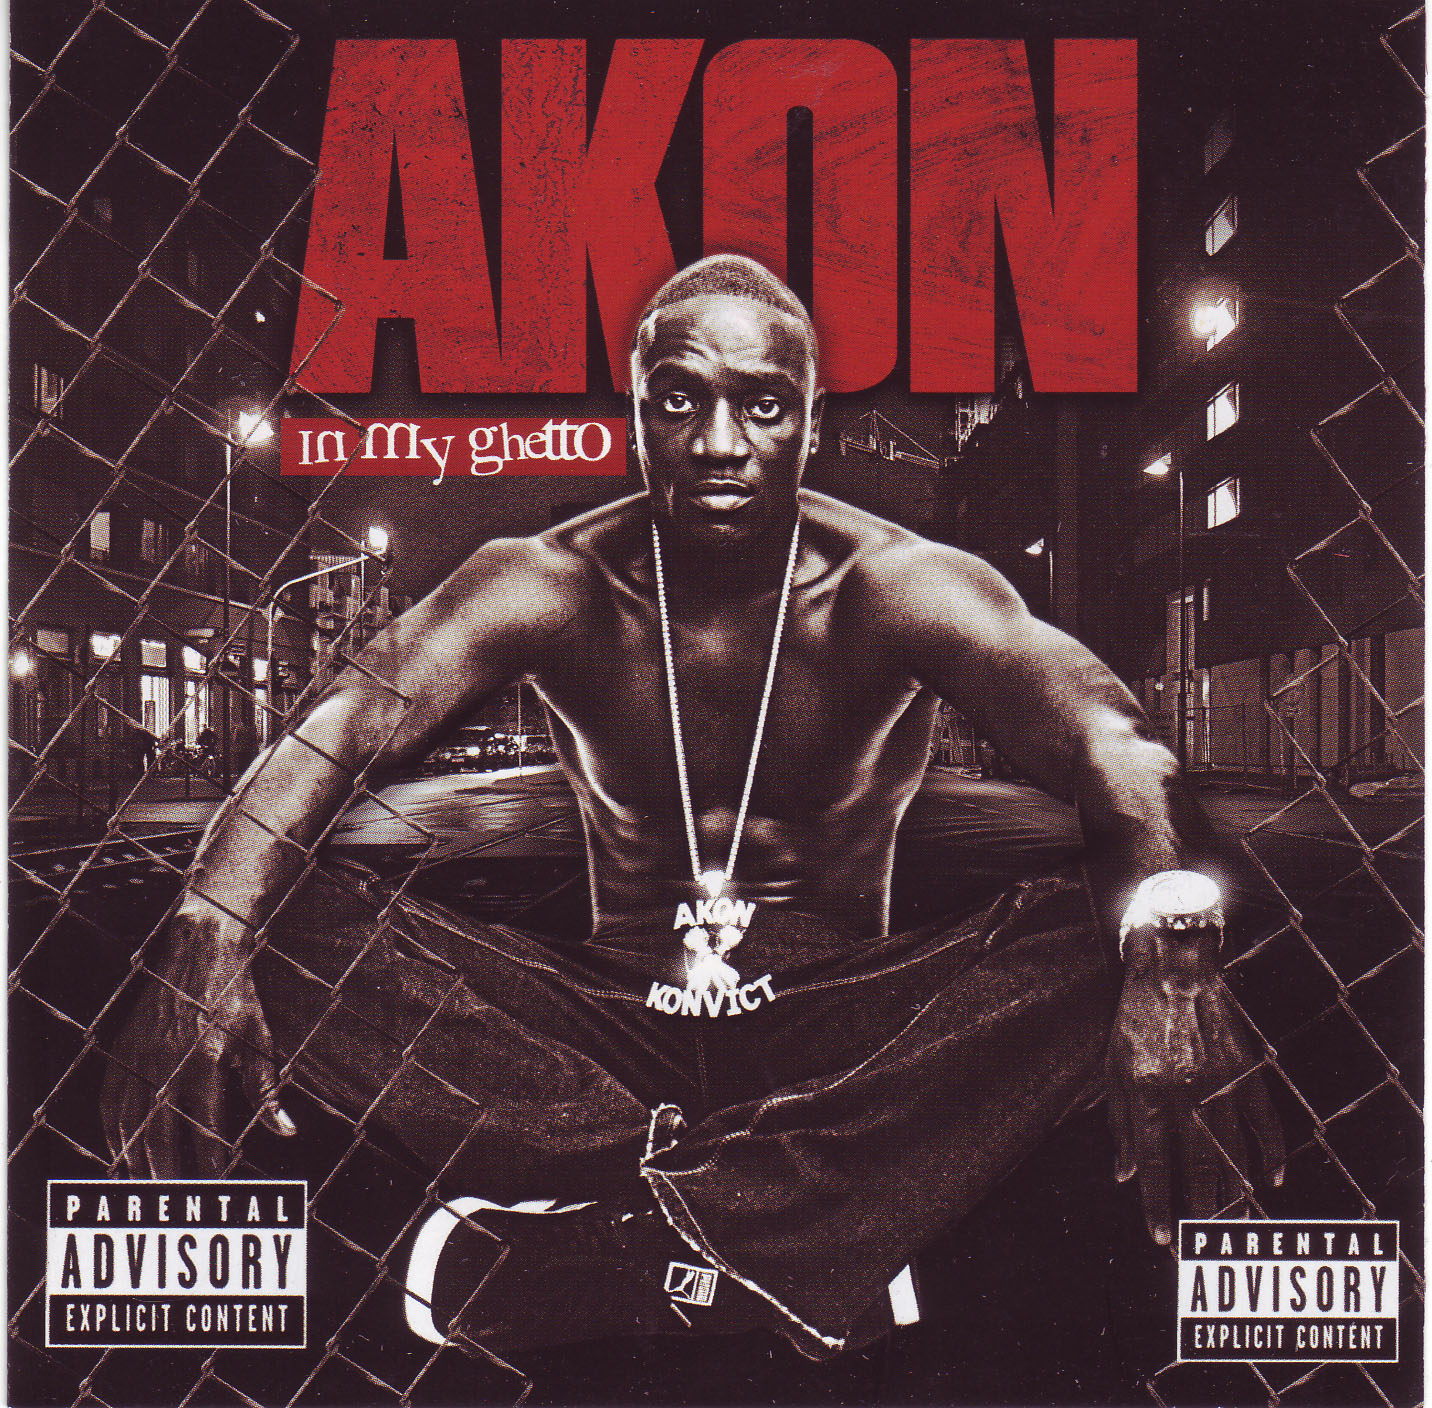 All akon songs download